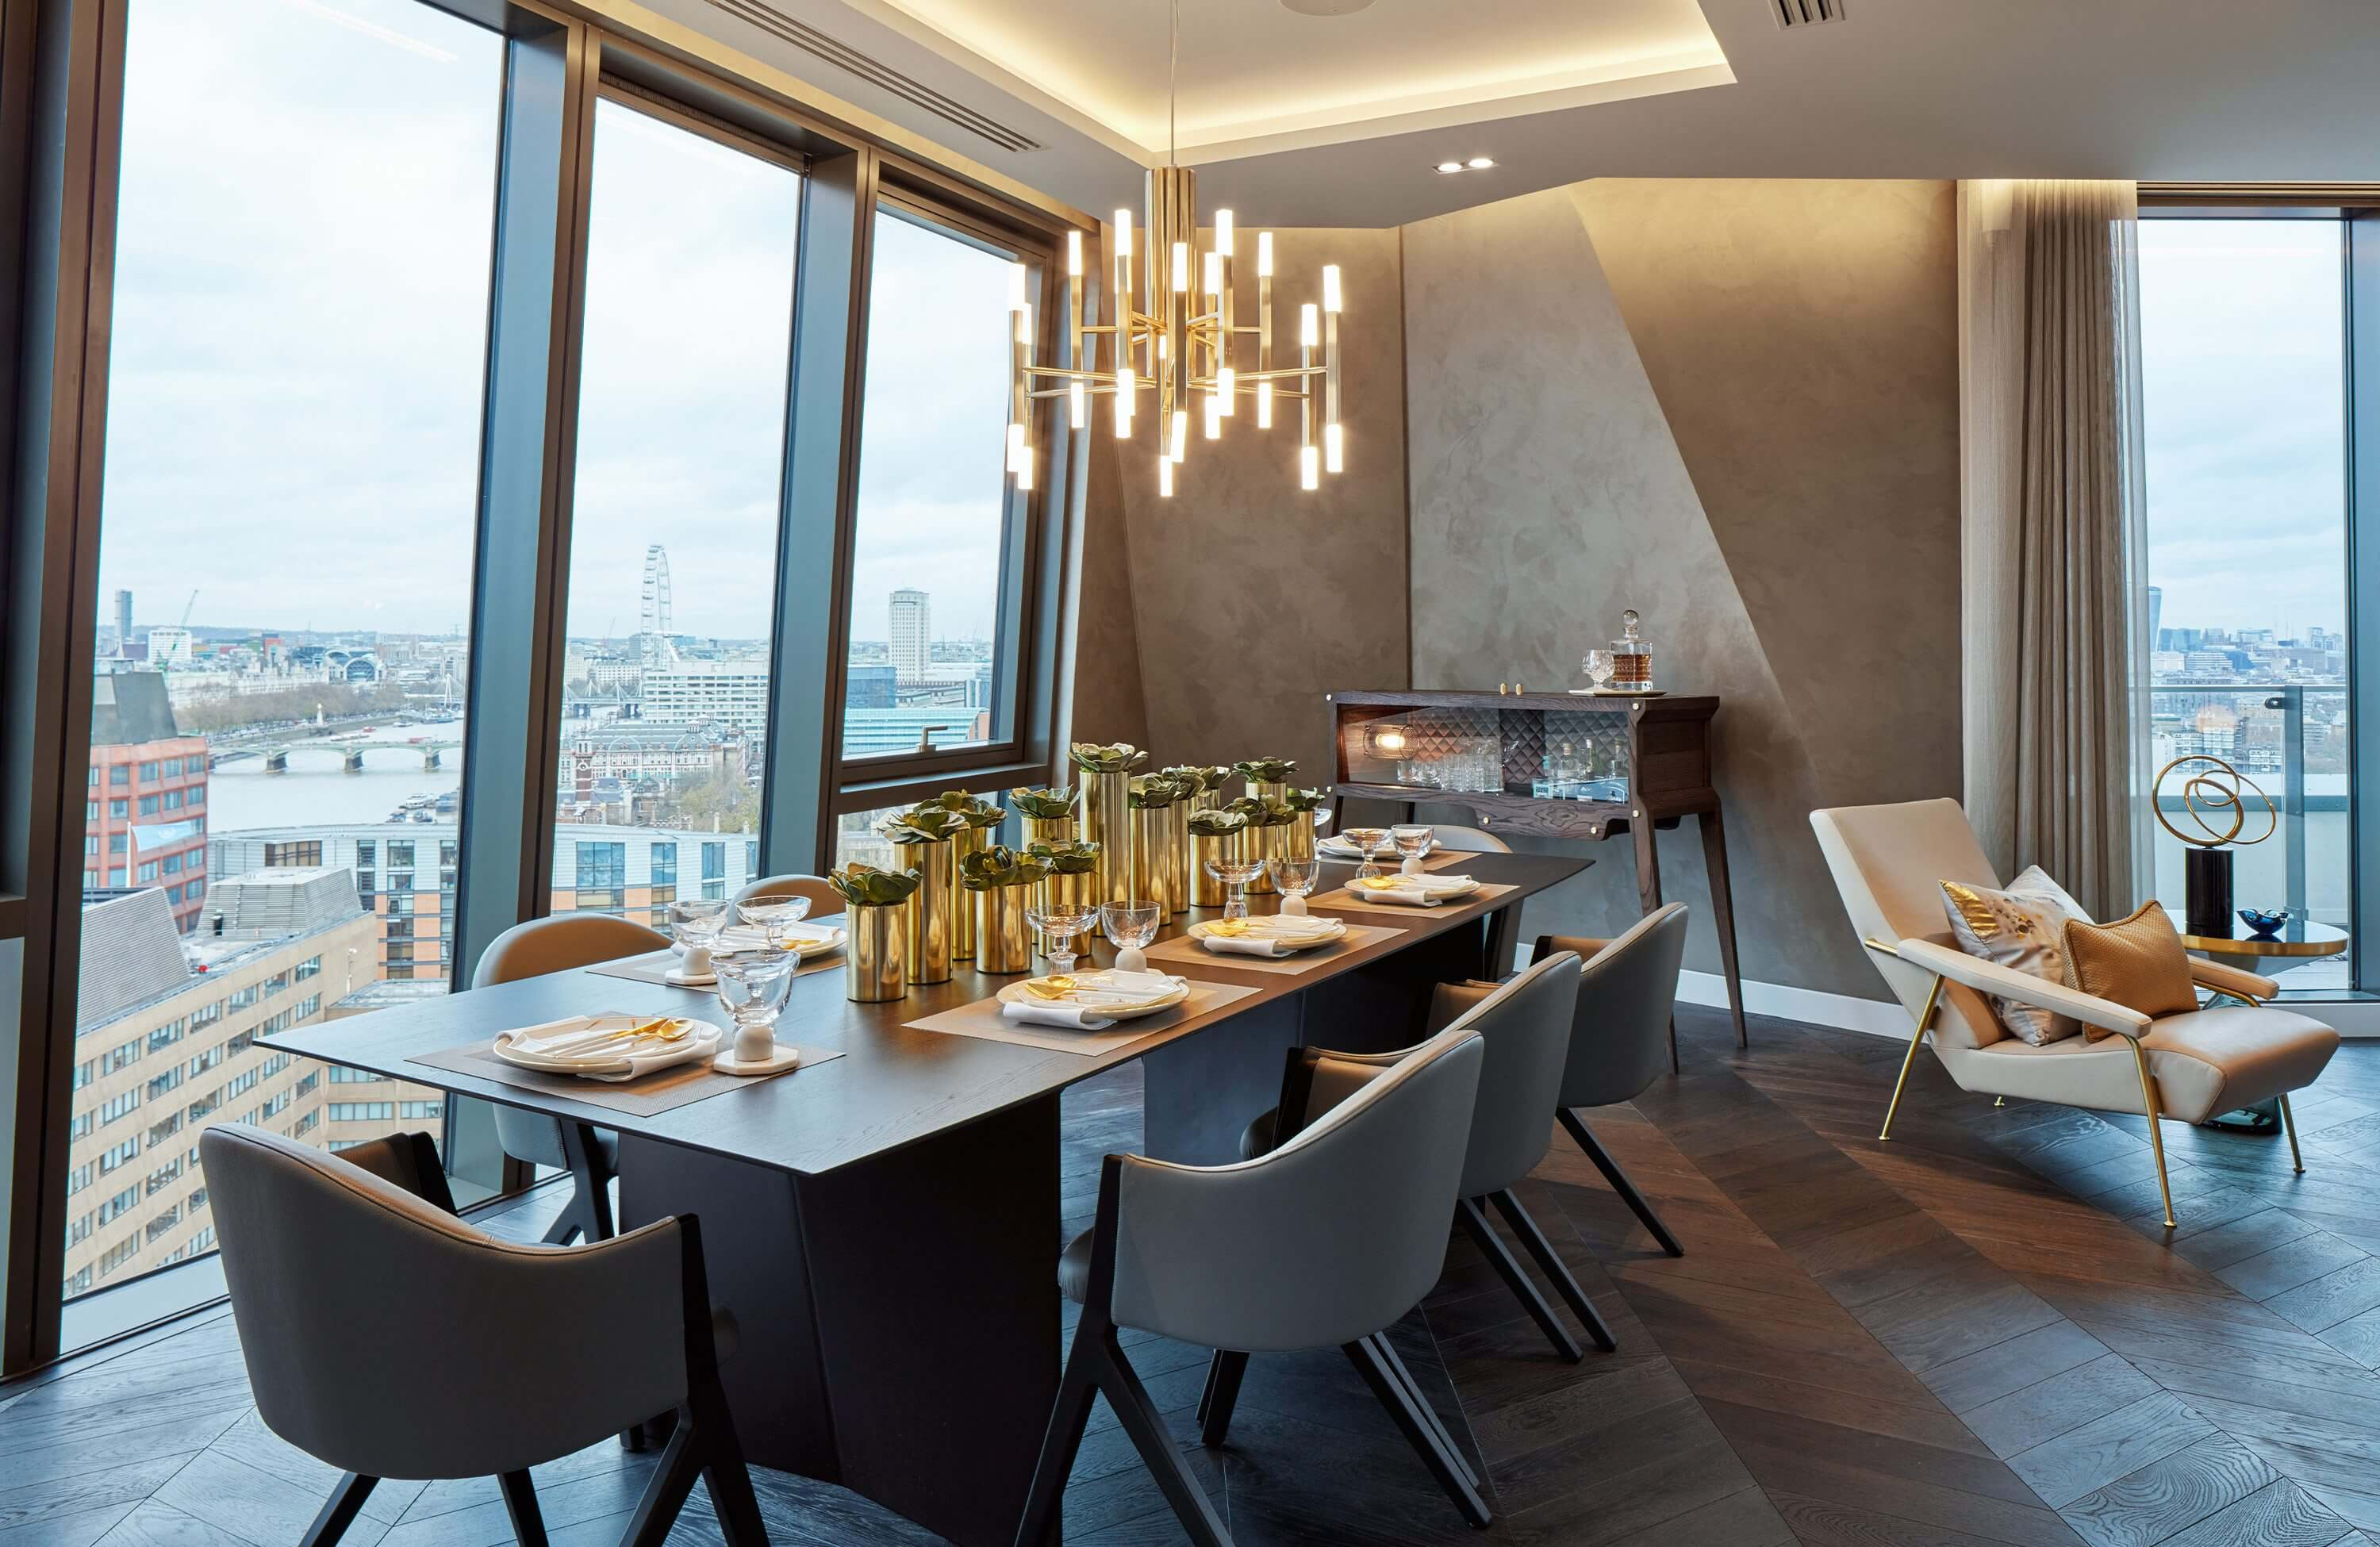 Honky Interior Design Parliament House London Dining Room